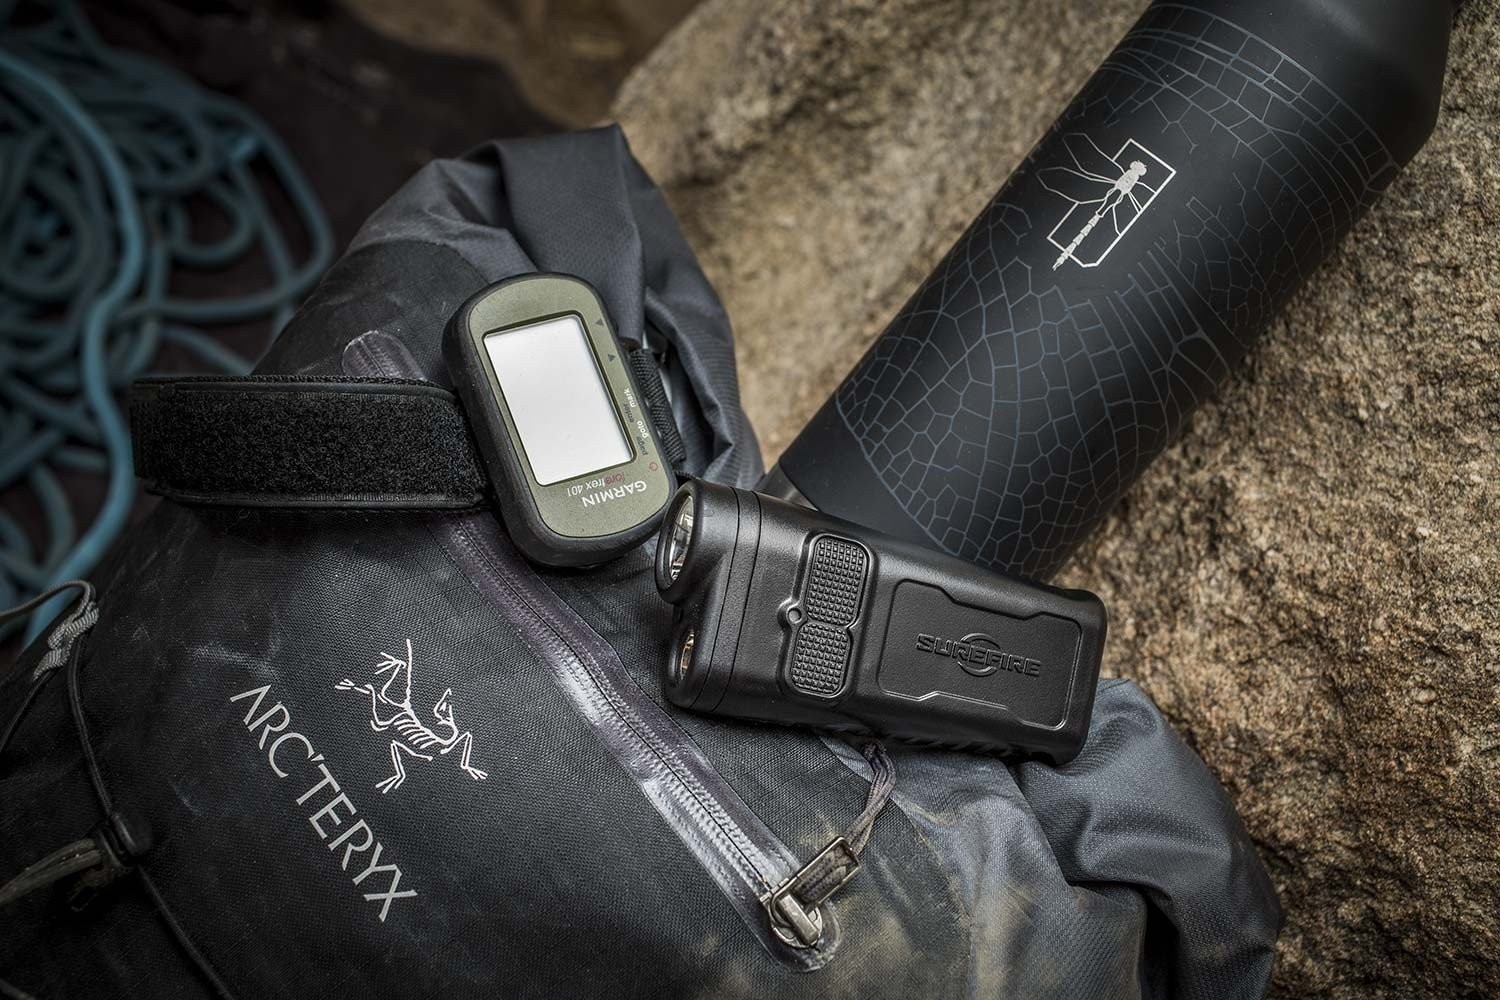 SureFire Guardian flashlight with camping backpack